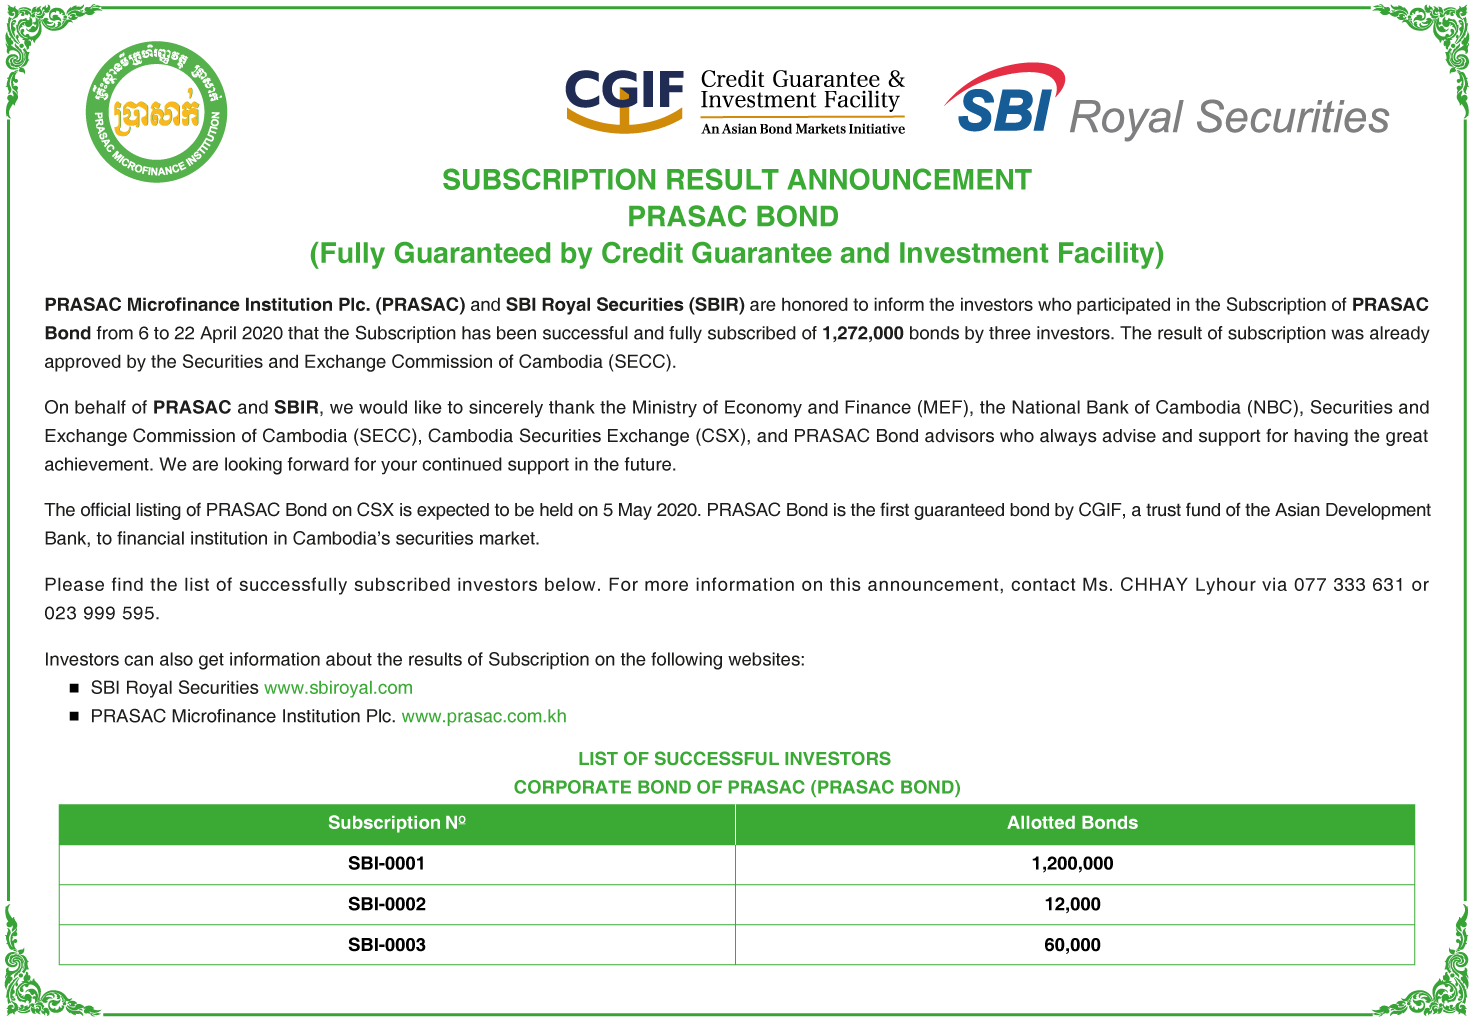 Subscription Result Announcement of PRASAC Bond